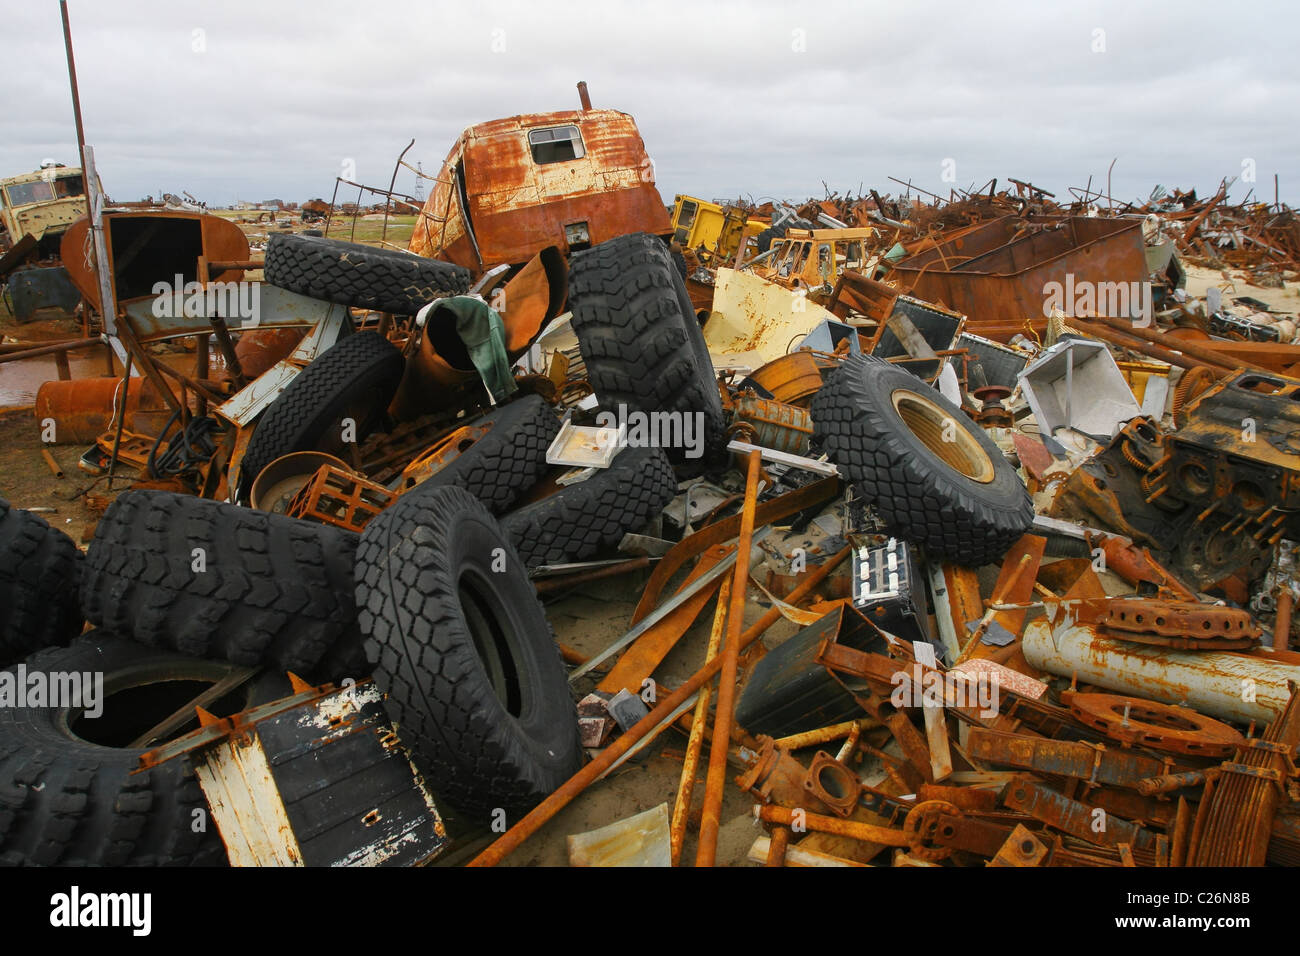 Rusty metal, heavy tires and so on occupy the frame space to the horizon. Yamal peninsula, RUSSIA - Stock Image